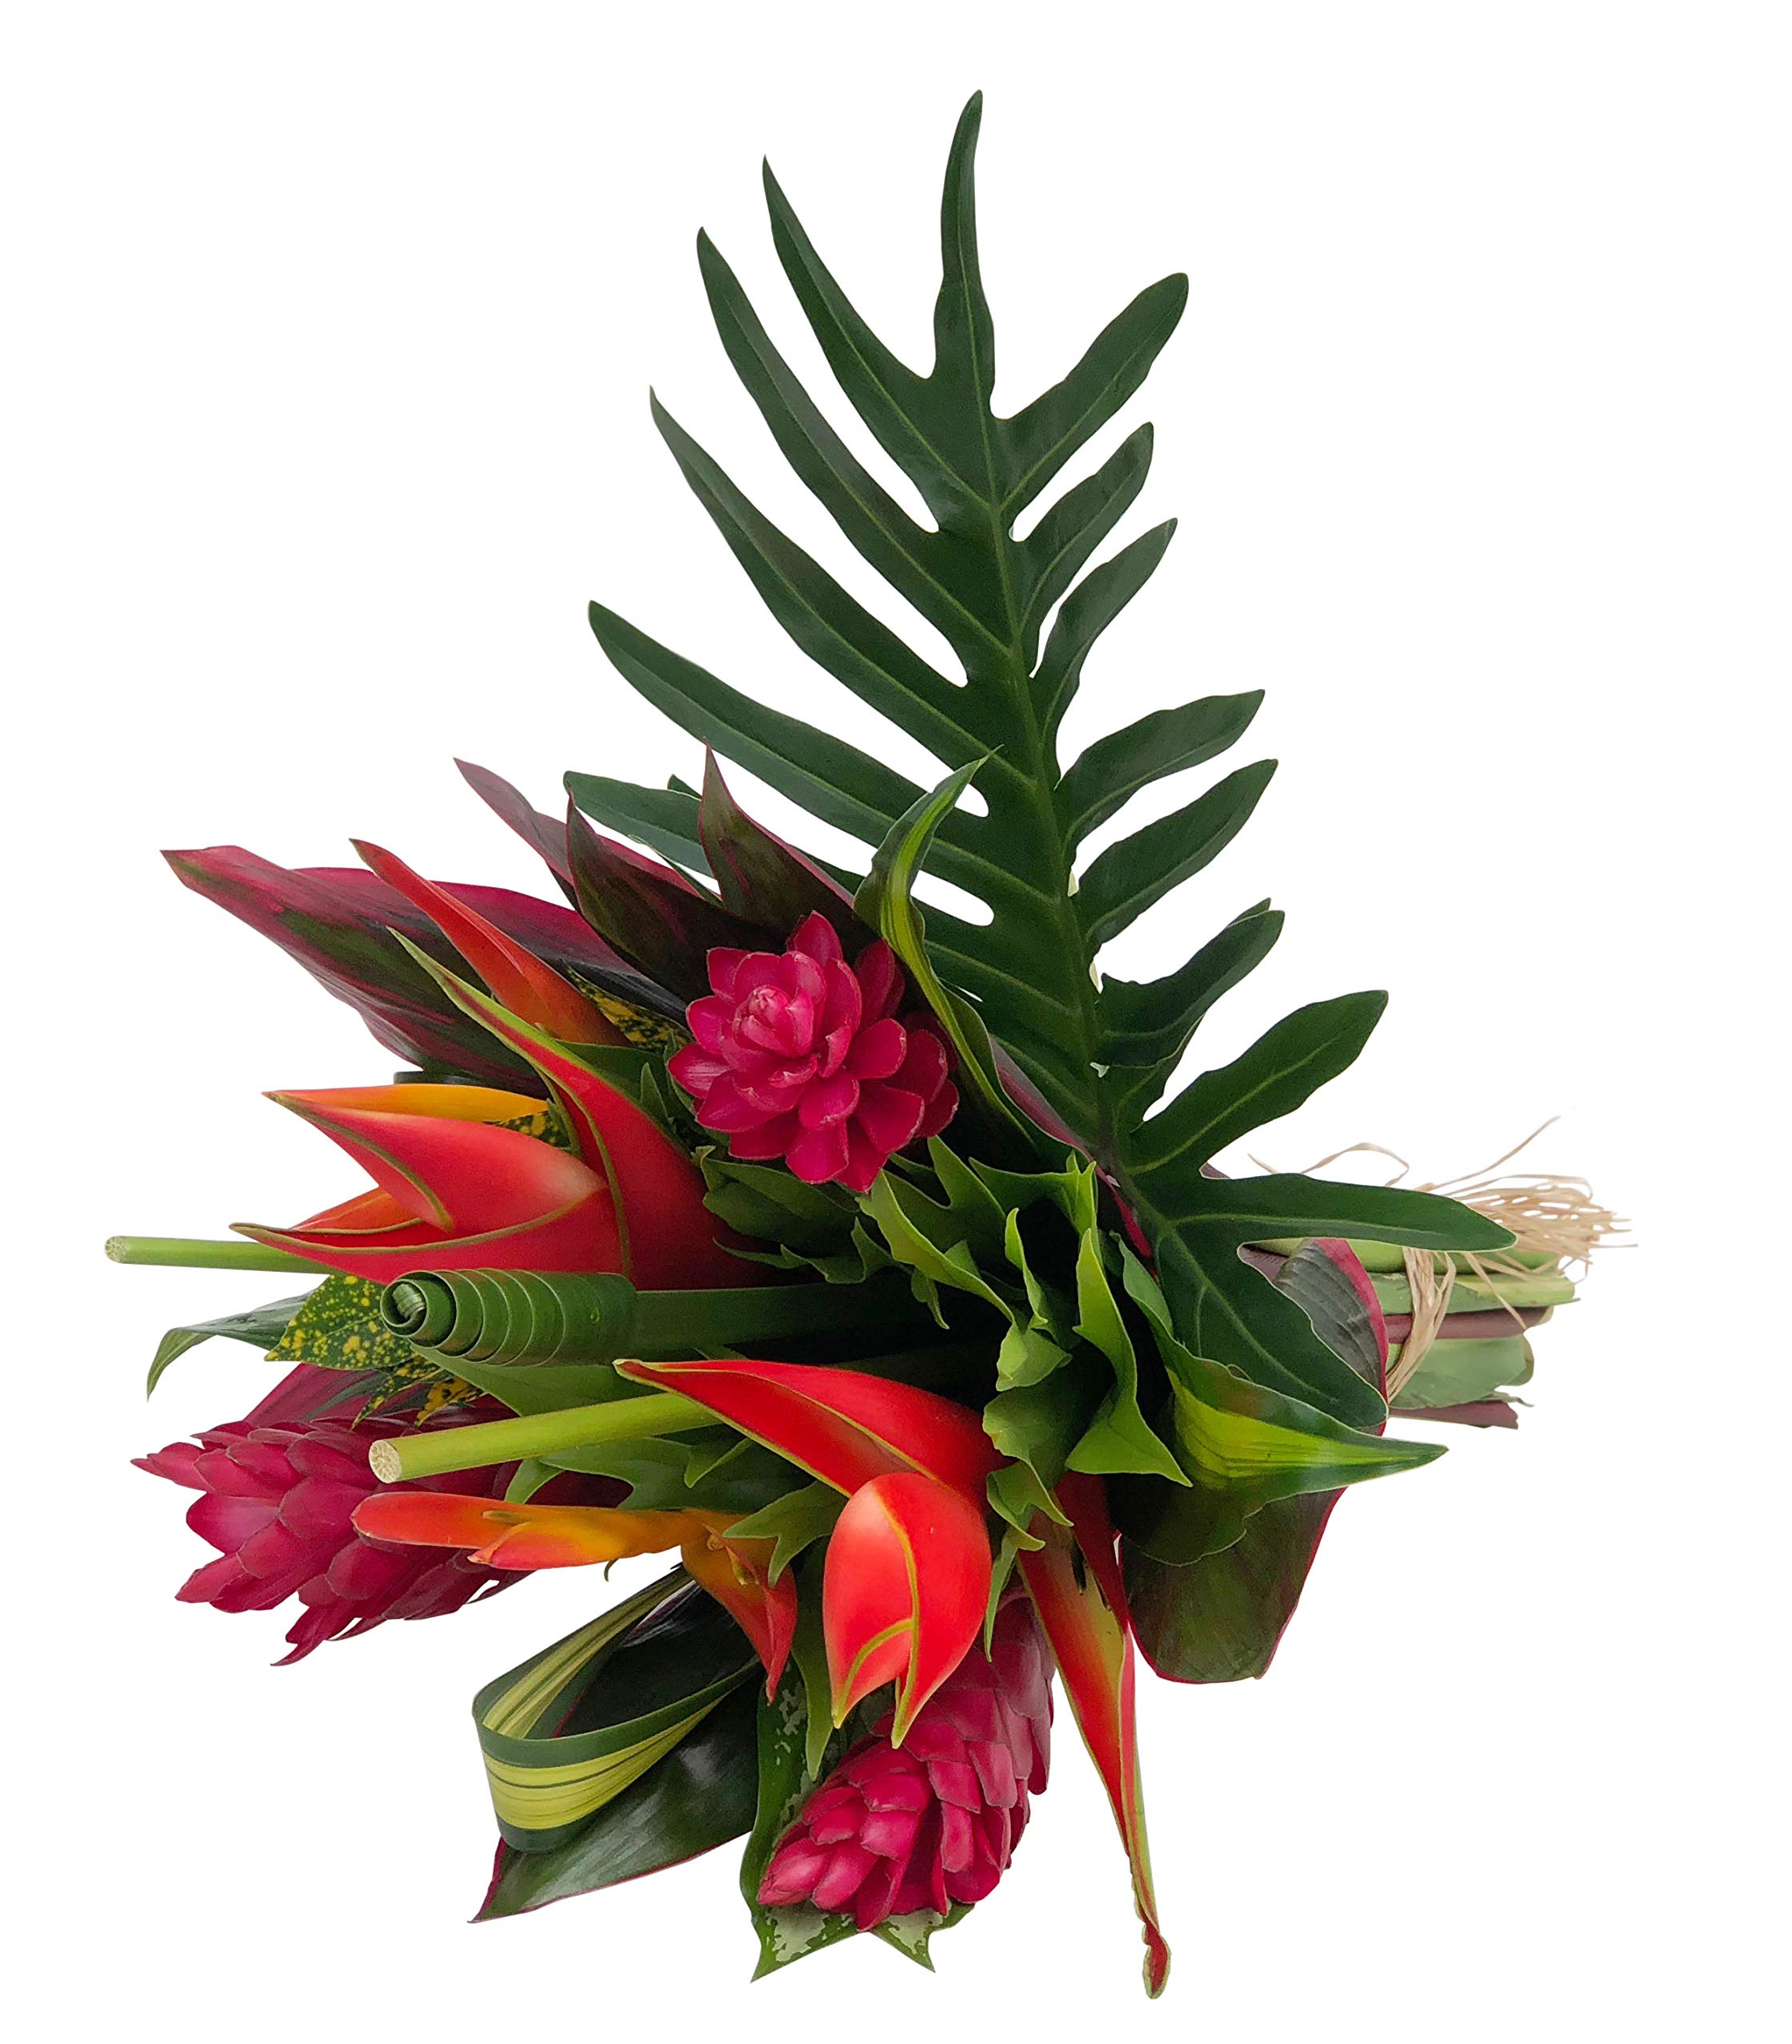 Tropical Bouquet Tropical Treasure with Bright Birds of Paradise, Pink Ginger, and Bold Tropical Greenery by BloomsyBox (Image #6)